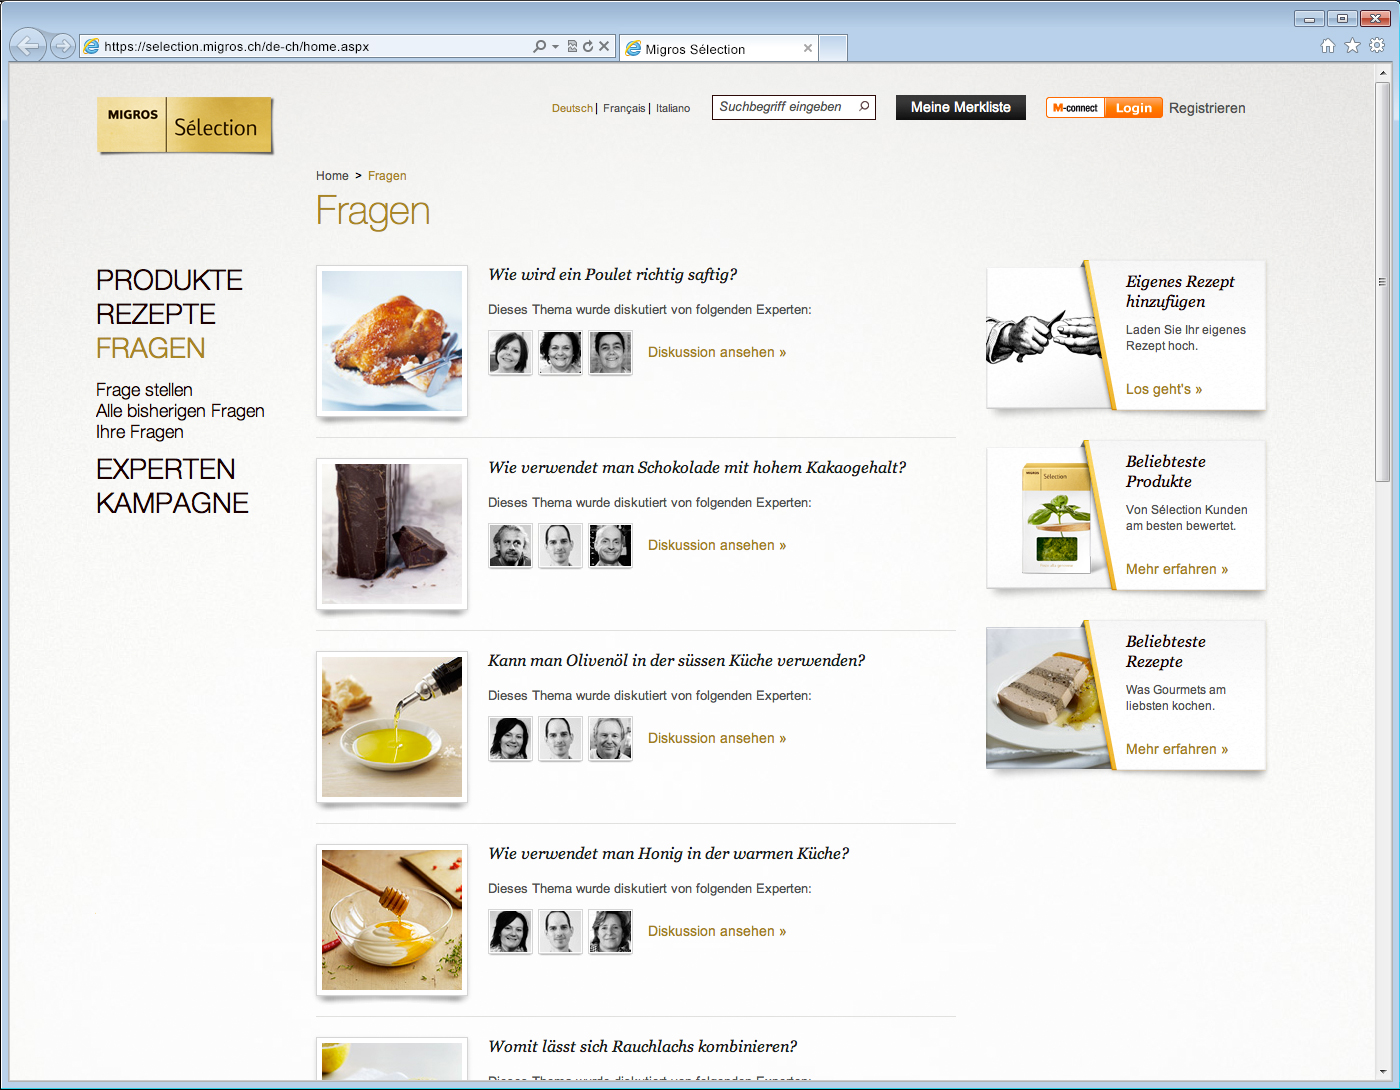 Migros_Selection_website_02